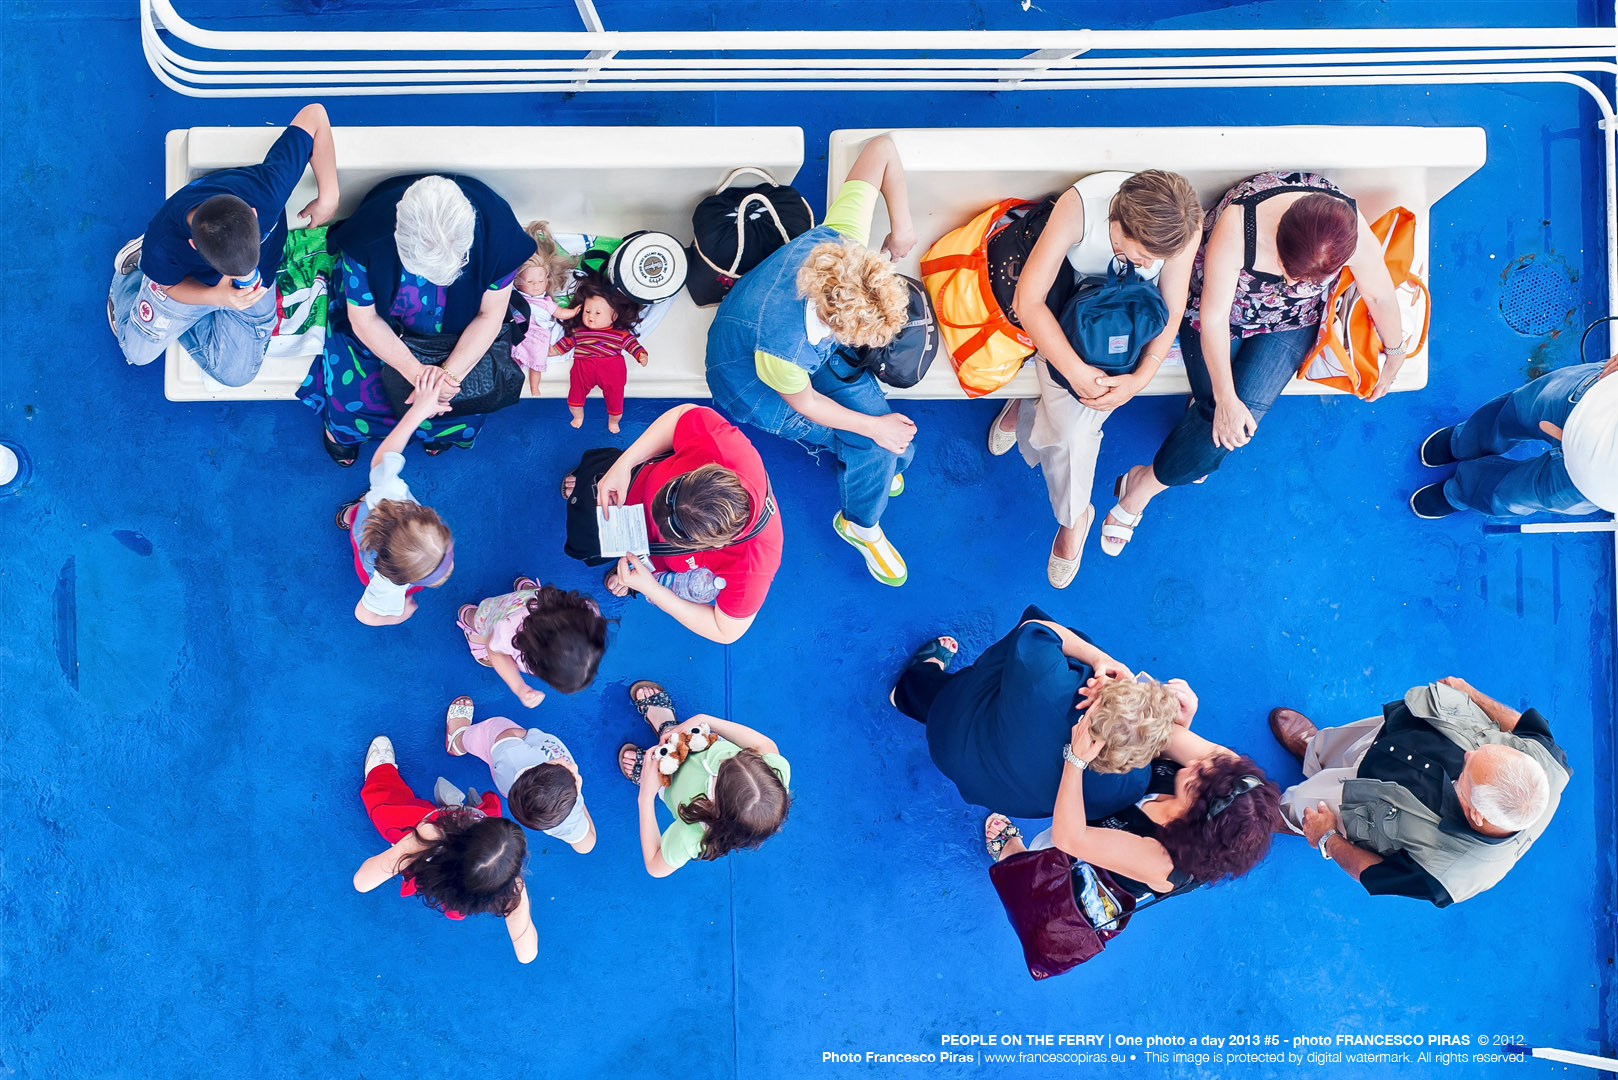 PEOPLE ON THE FERRY | One photo a day 2013 #5 - photo FRANCESCO PIRAS  © 2012. Photo Francesco Piras | www.francescopiras.eu •  This image is protected by digital watermark. All rights reserved.